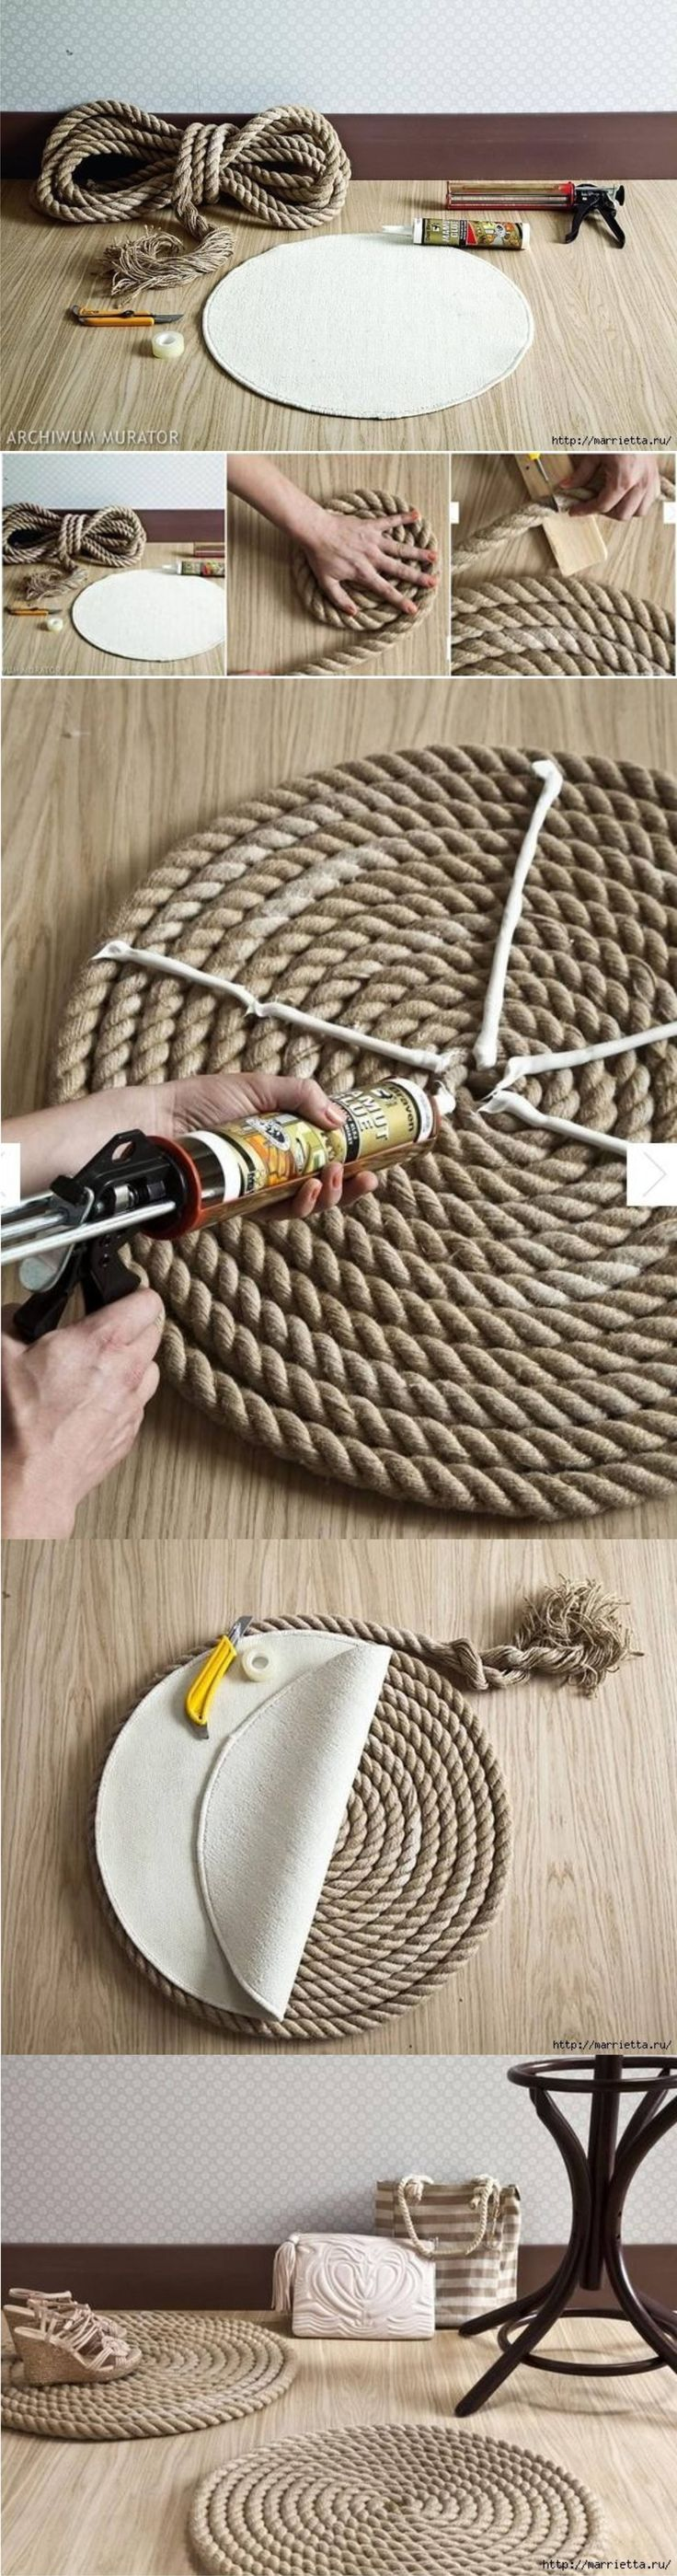 Alfombra DIY con cuerda - marrietta.ru - DIY Rope Carpet